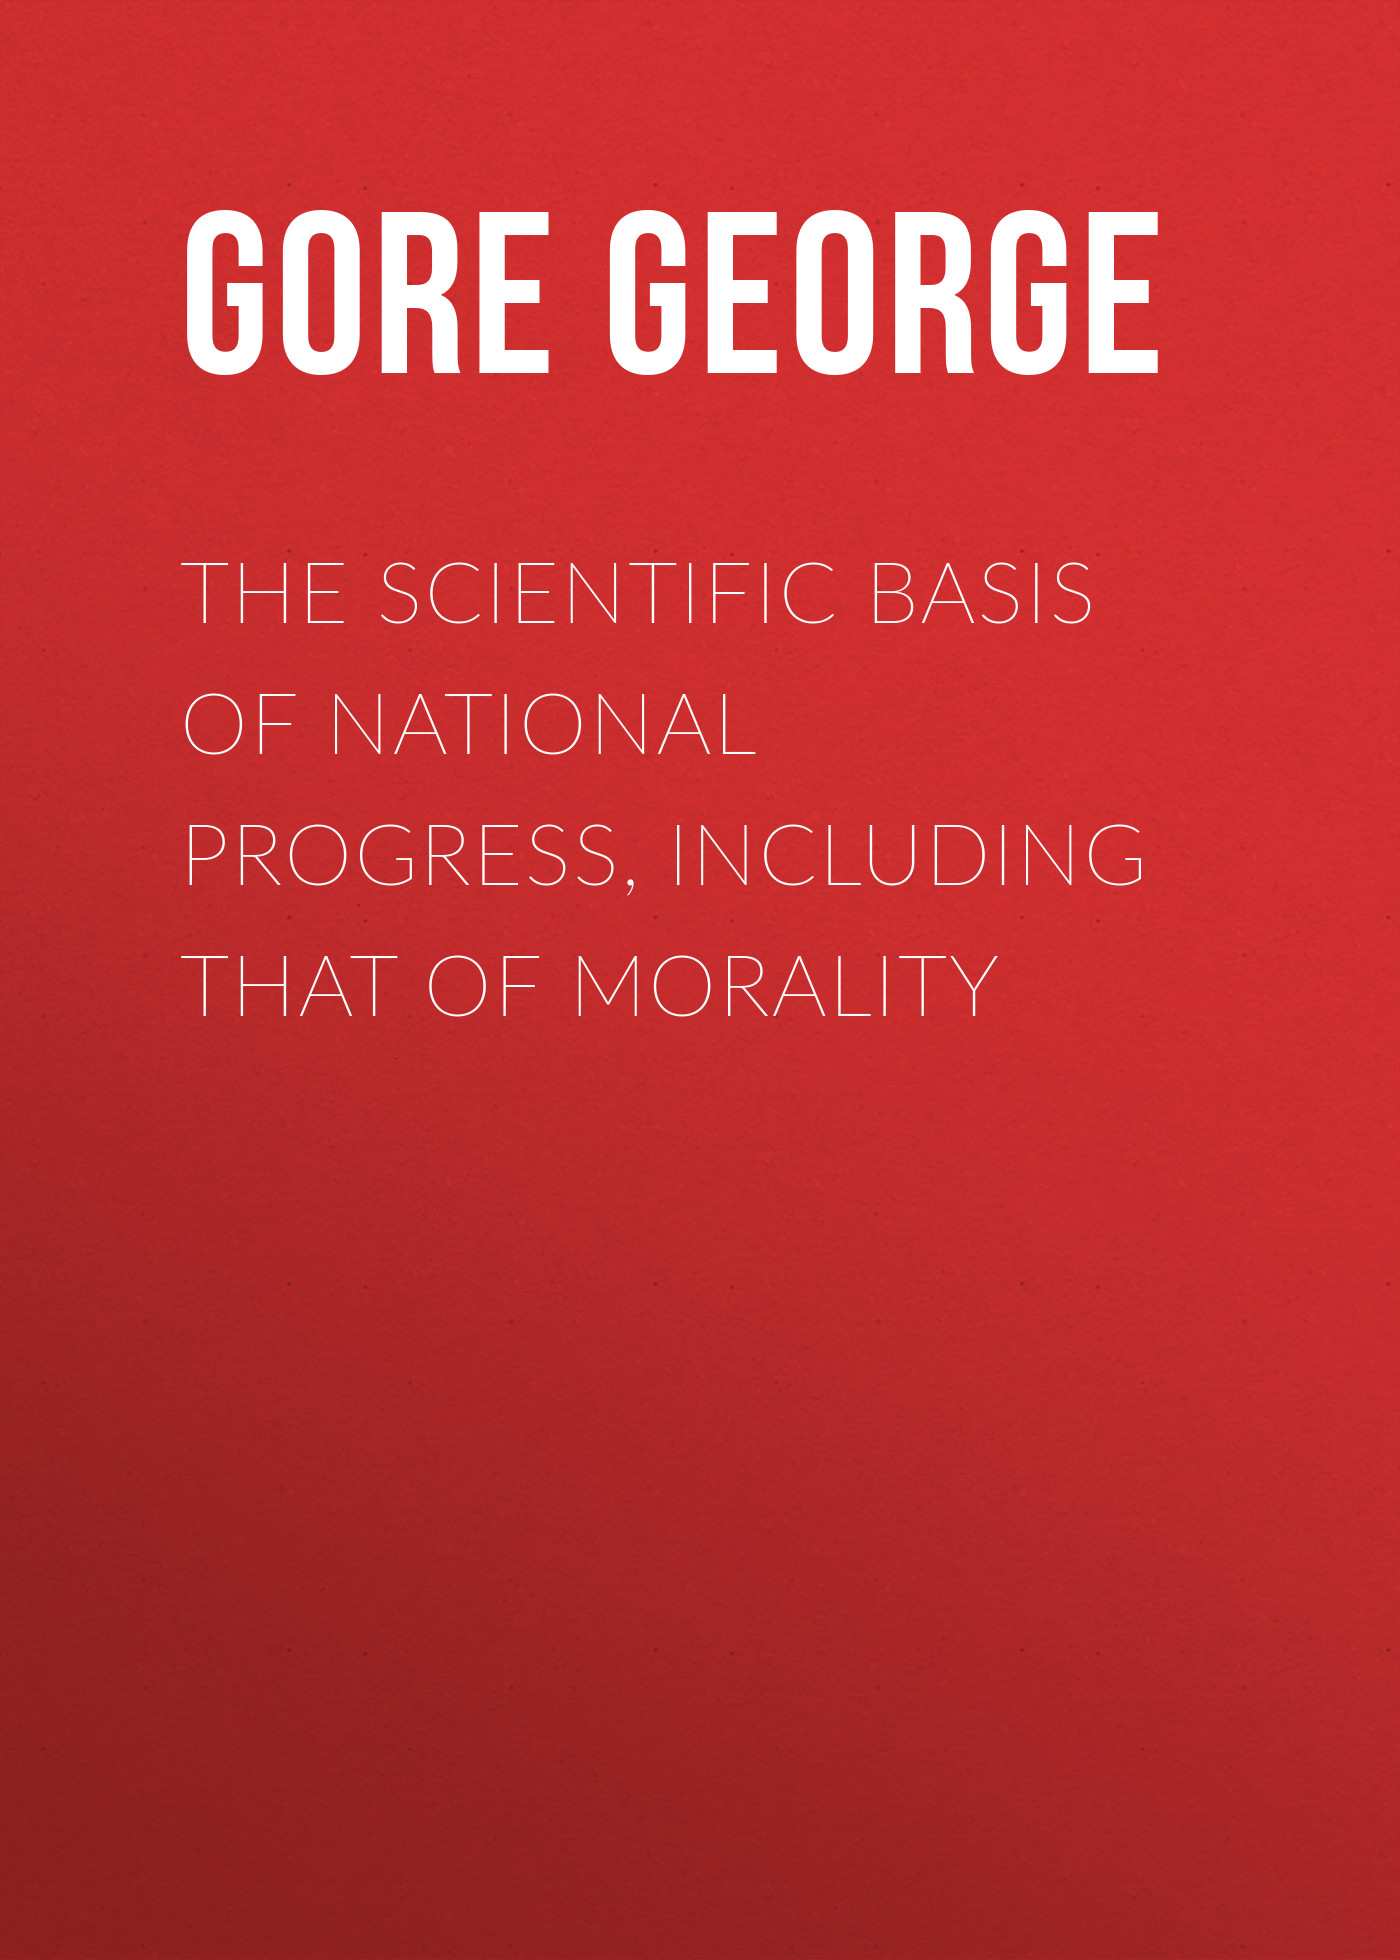 Gore George The Scientific Basis of National Progress, Including that of Morality the dignity of working men – morality